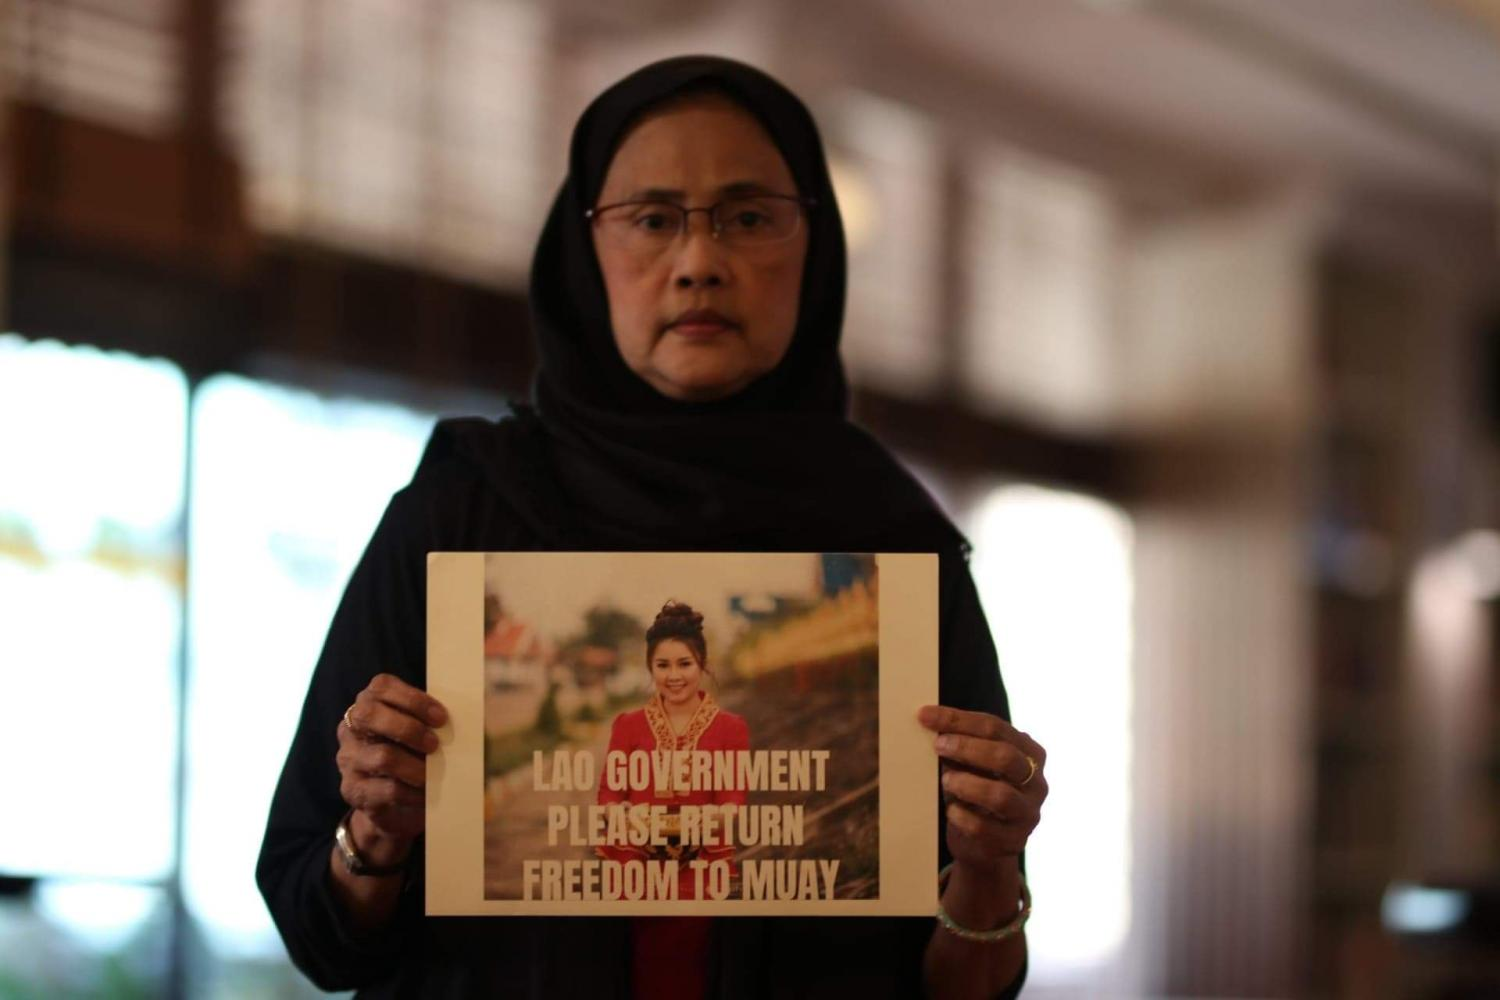 Thailand's former human rights commissioner Angkhana Neelapaijit holds a placard showing the #FreeMuay campaign to raise awareness about the imprisonment of Lao activist Houayheuang 'Muay' Xayabouly. (Photo courtesy of Netiwit Chotiphatphaisal)